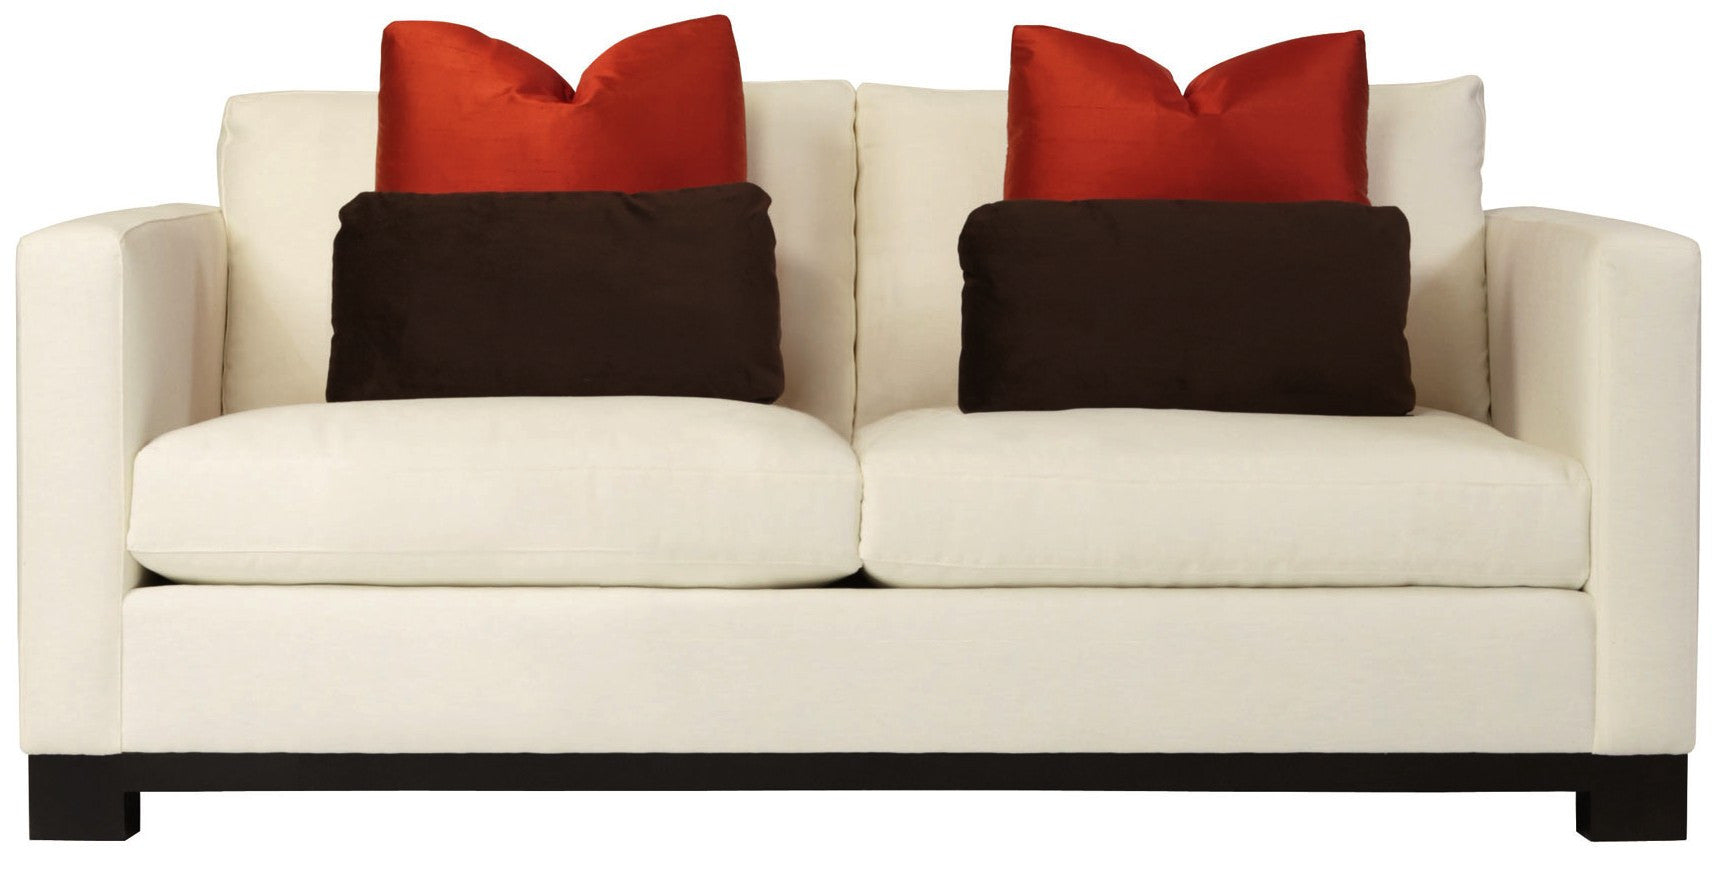 Loveseat shown.